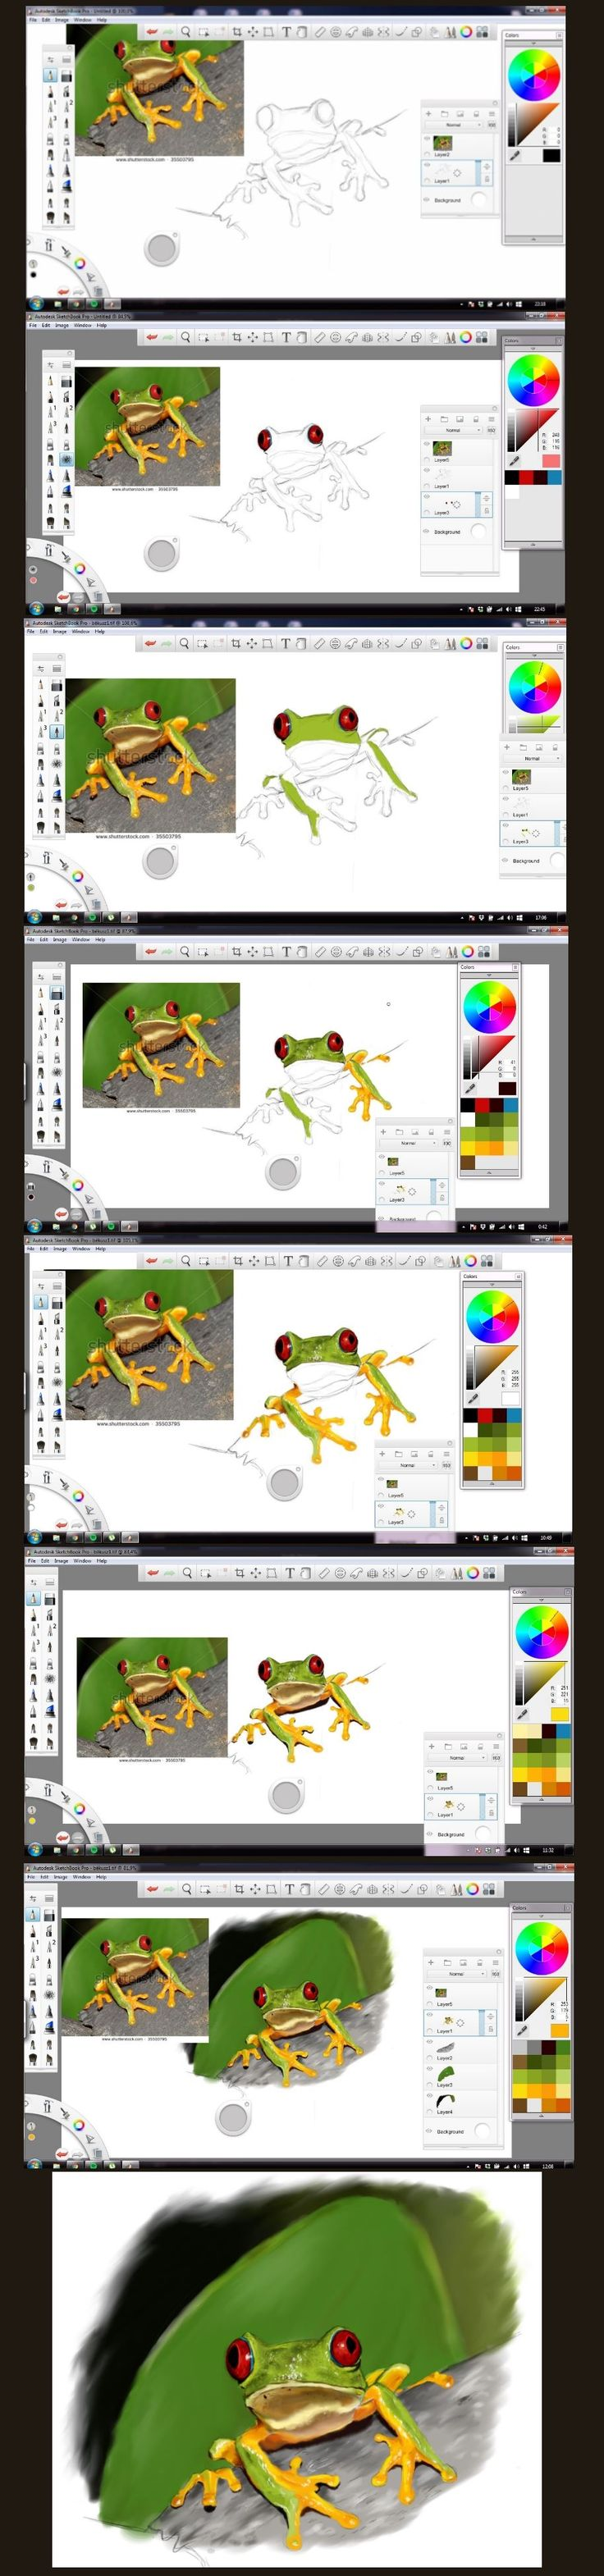 Step-by-step of drawing a tree frog from the Amazonas